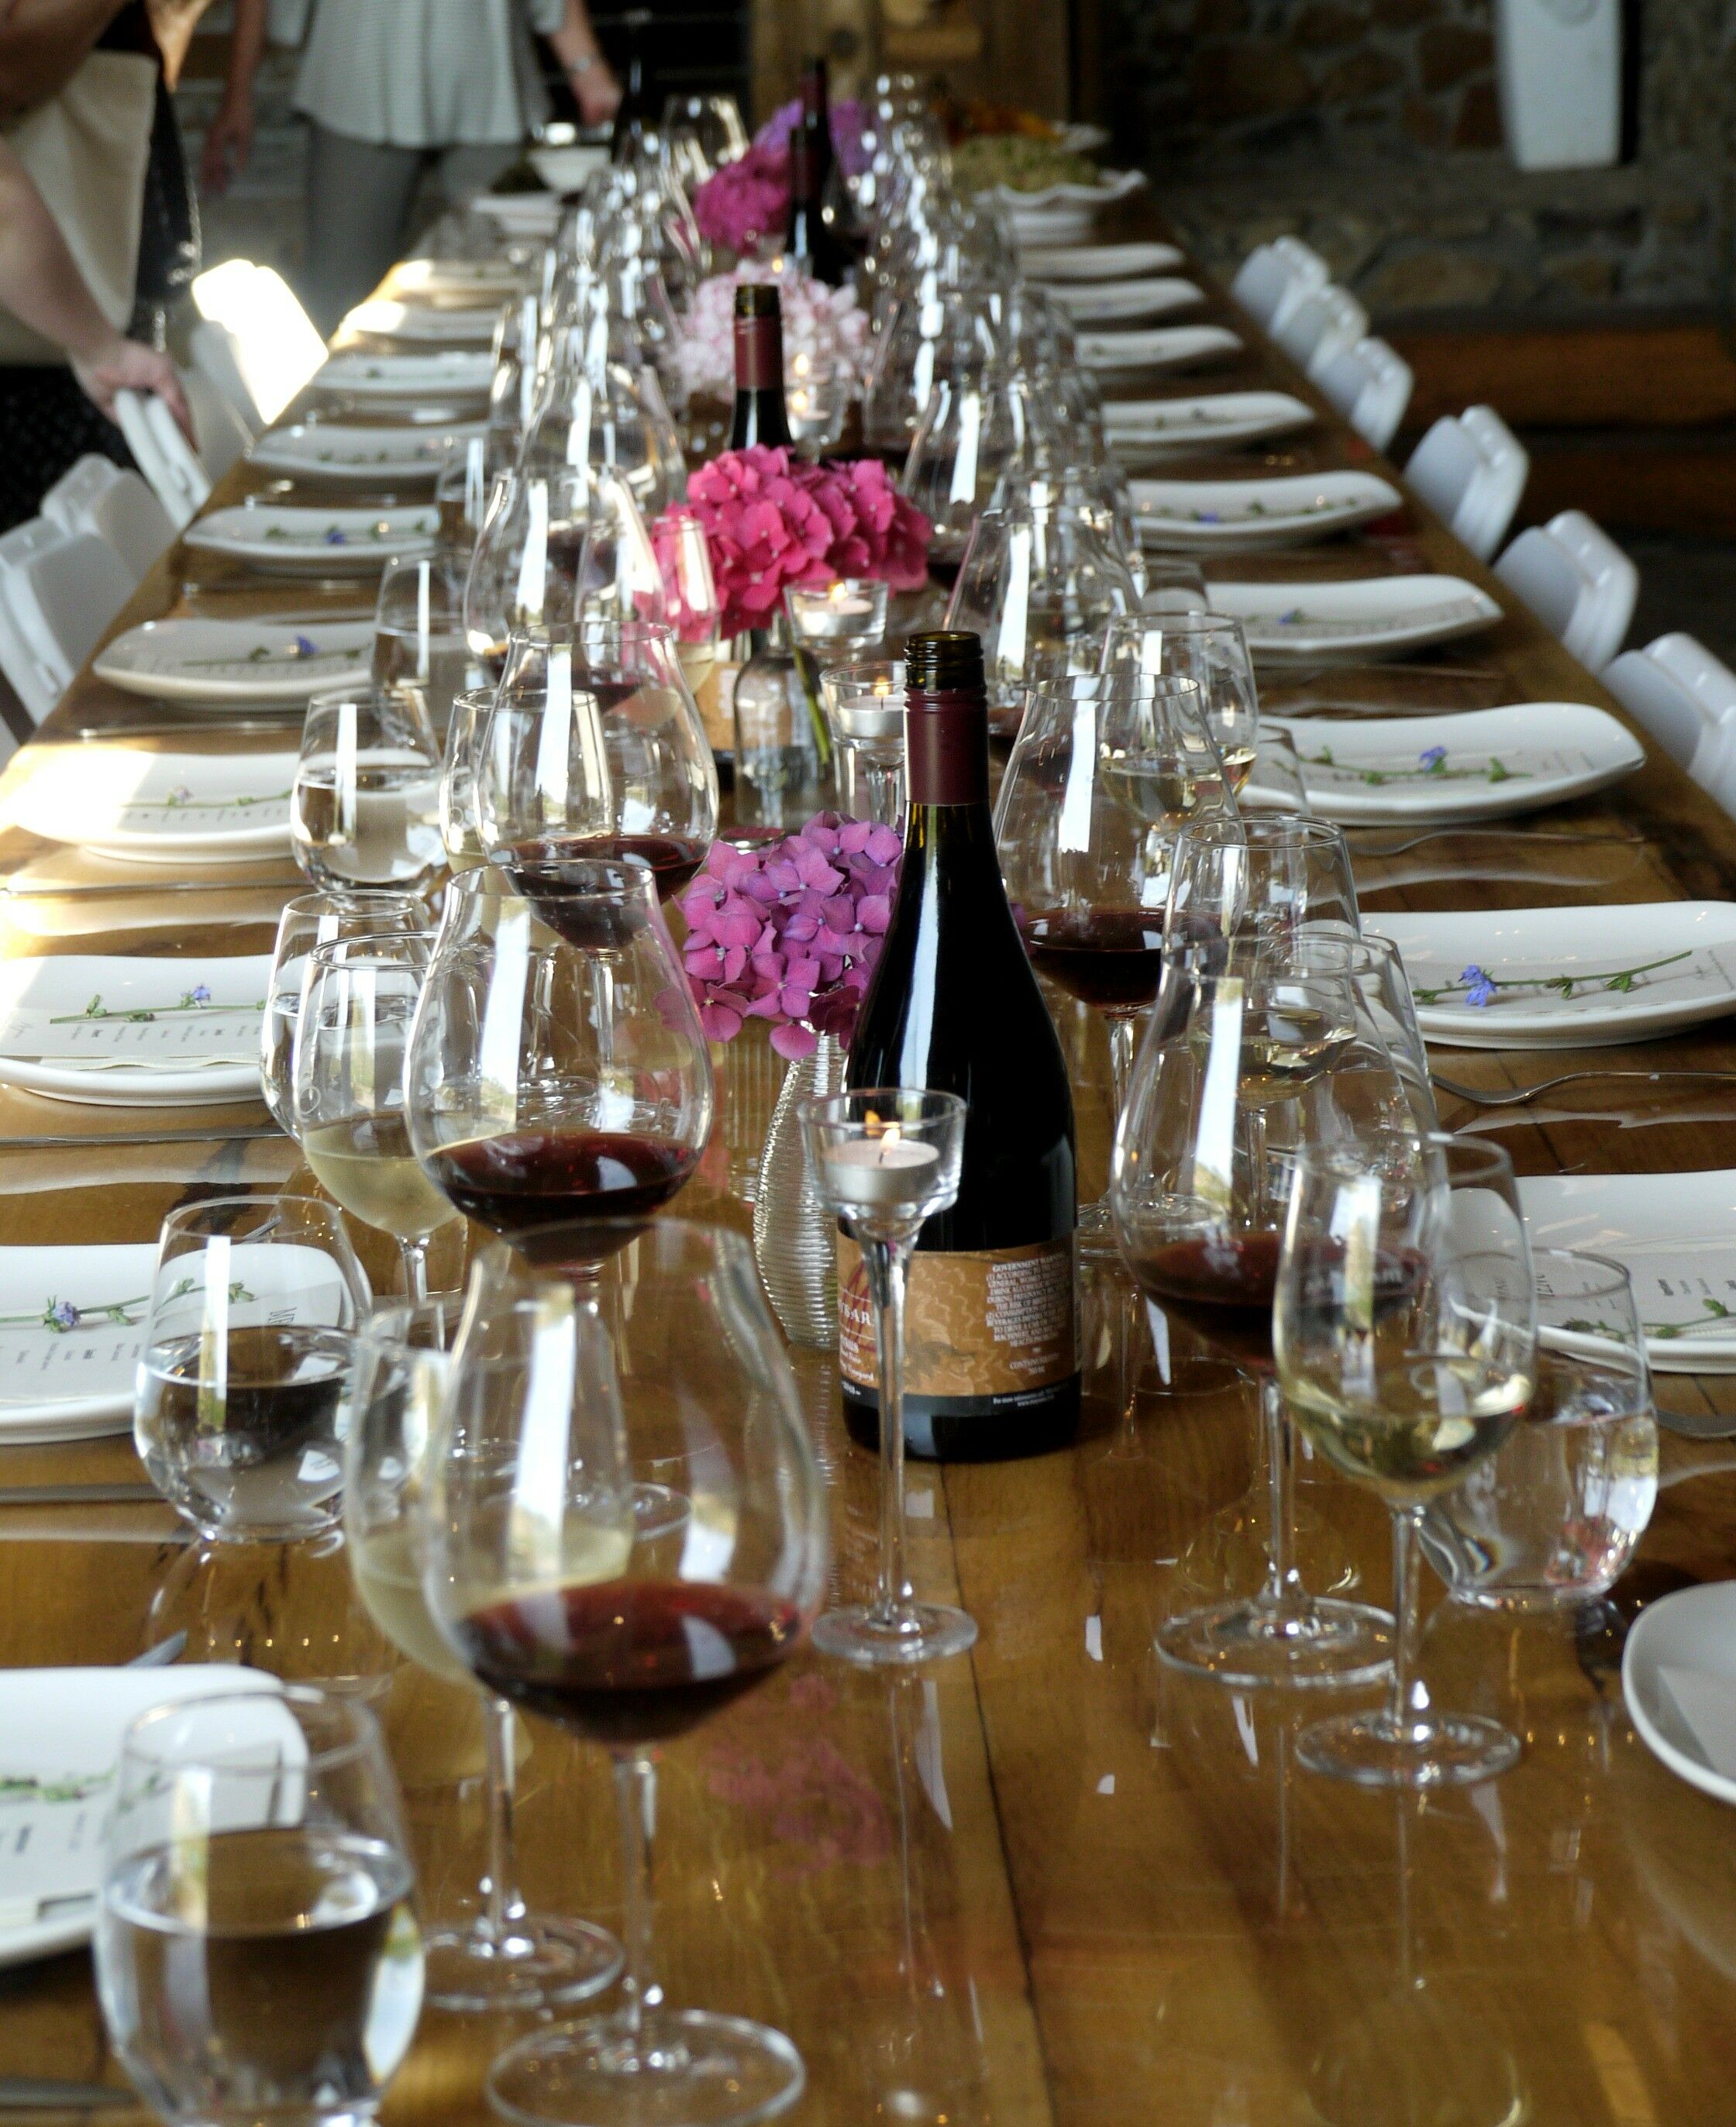 Table 1 - Estate Grown, Naturally - A Tour of Maysara Winery & Momtazi Vineyard, McMinnville, Oregon | The Good Hearted Woman